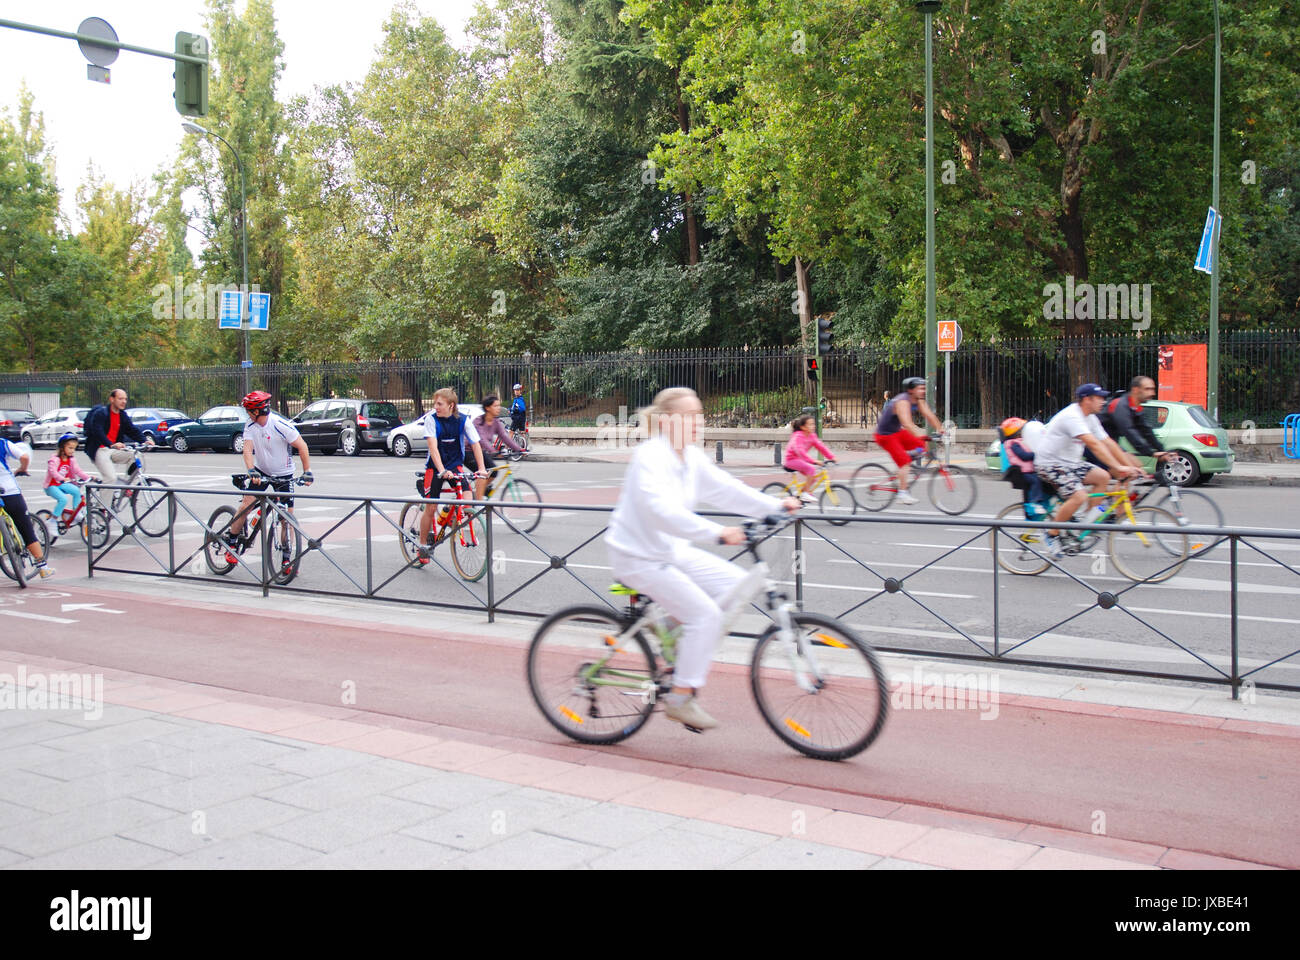 Bicycle Day. Madrid, Spain. - Stock Image